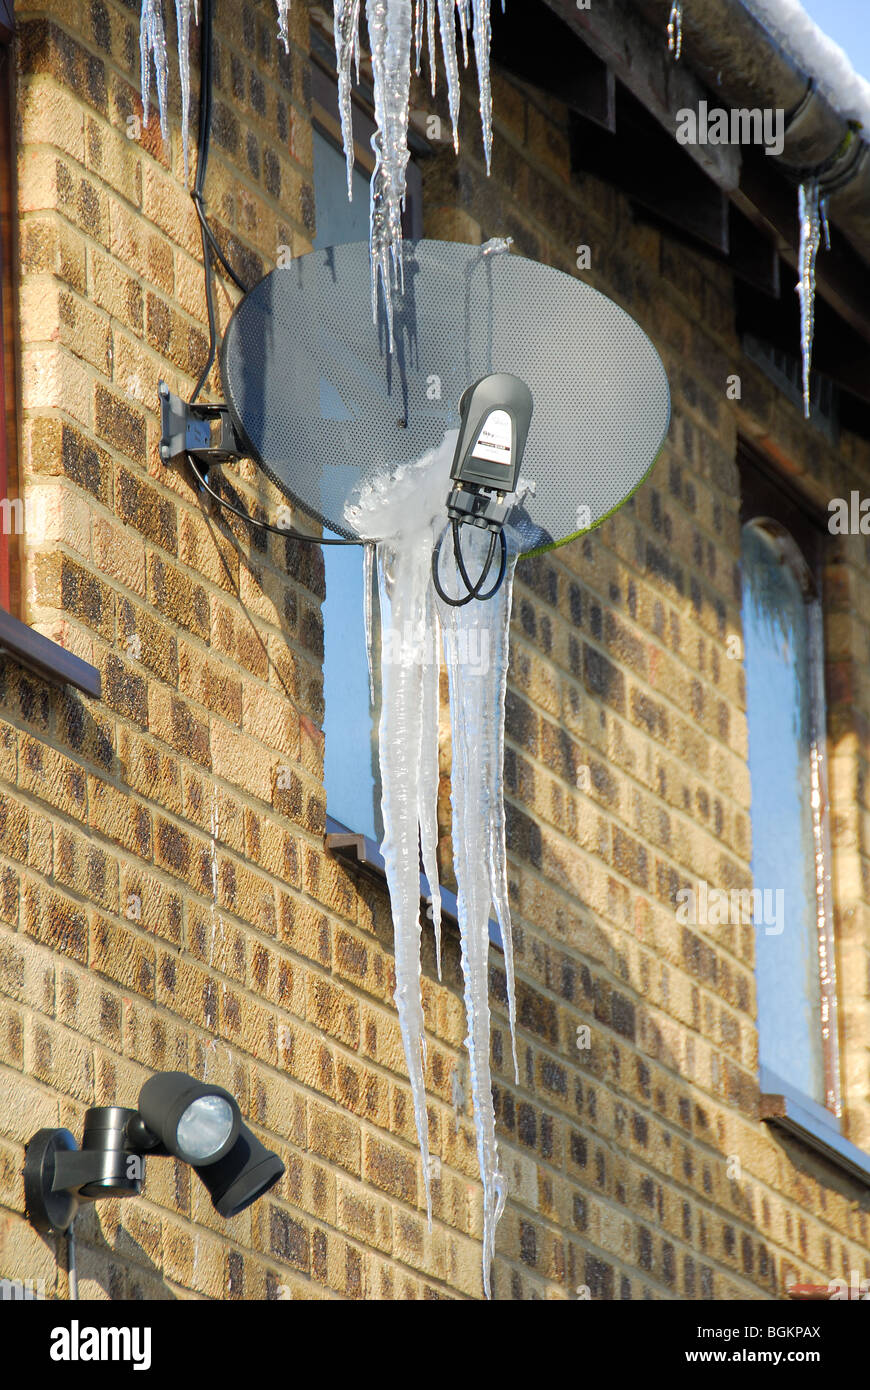 A satellite dish with icicles. UK, 2010. - Stock Image